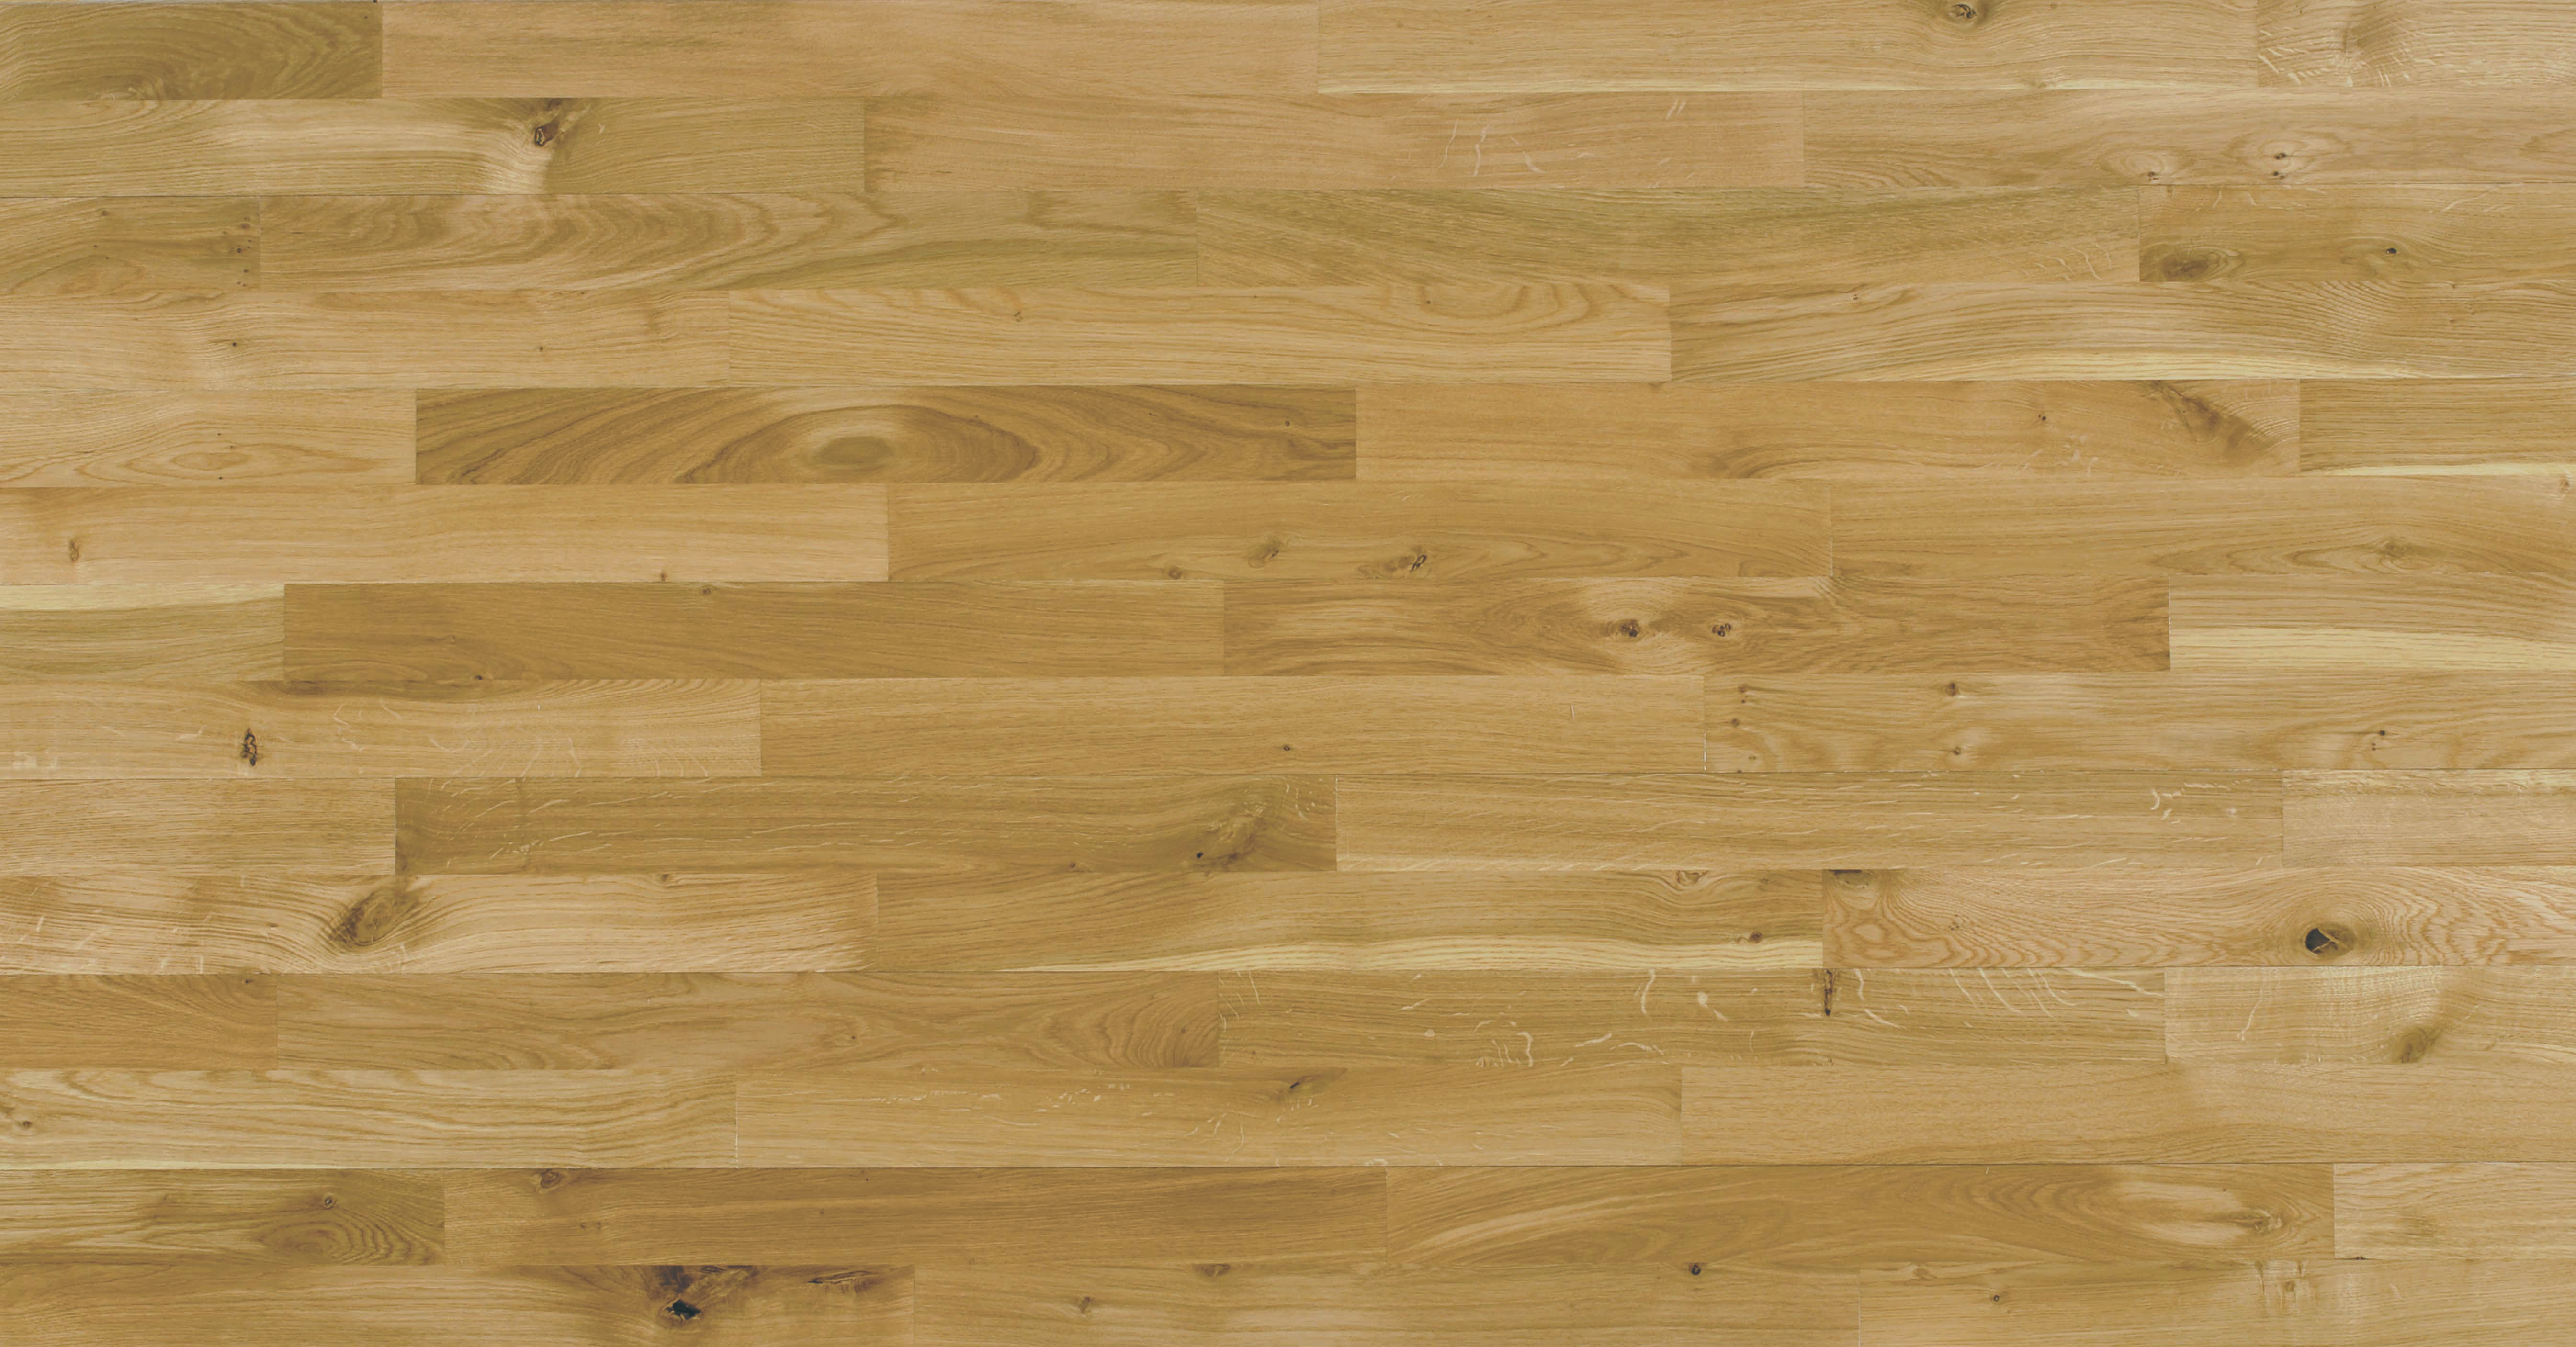 Product Images Wooden Floors